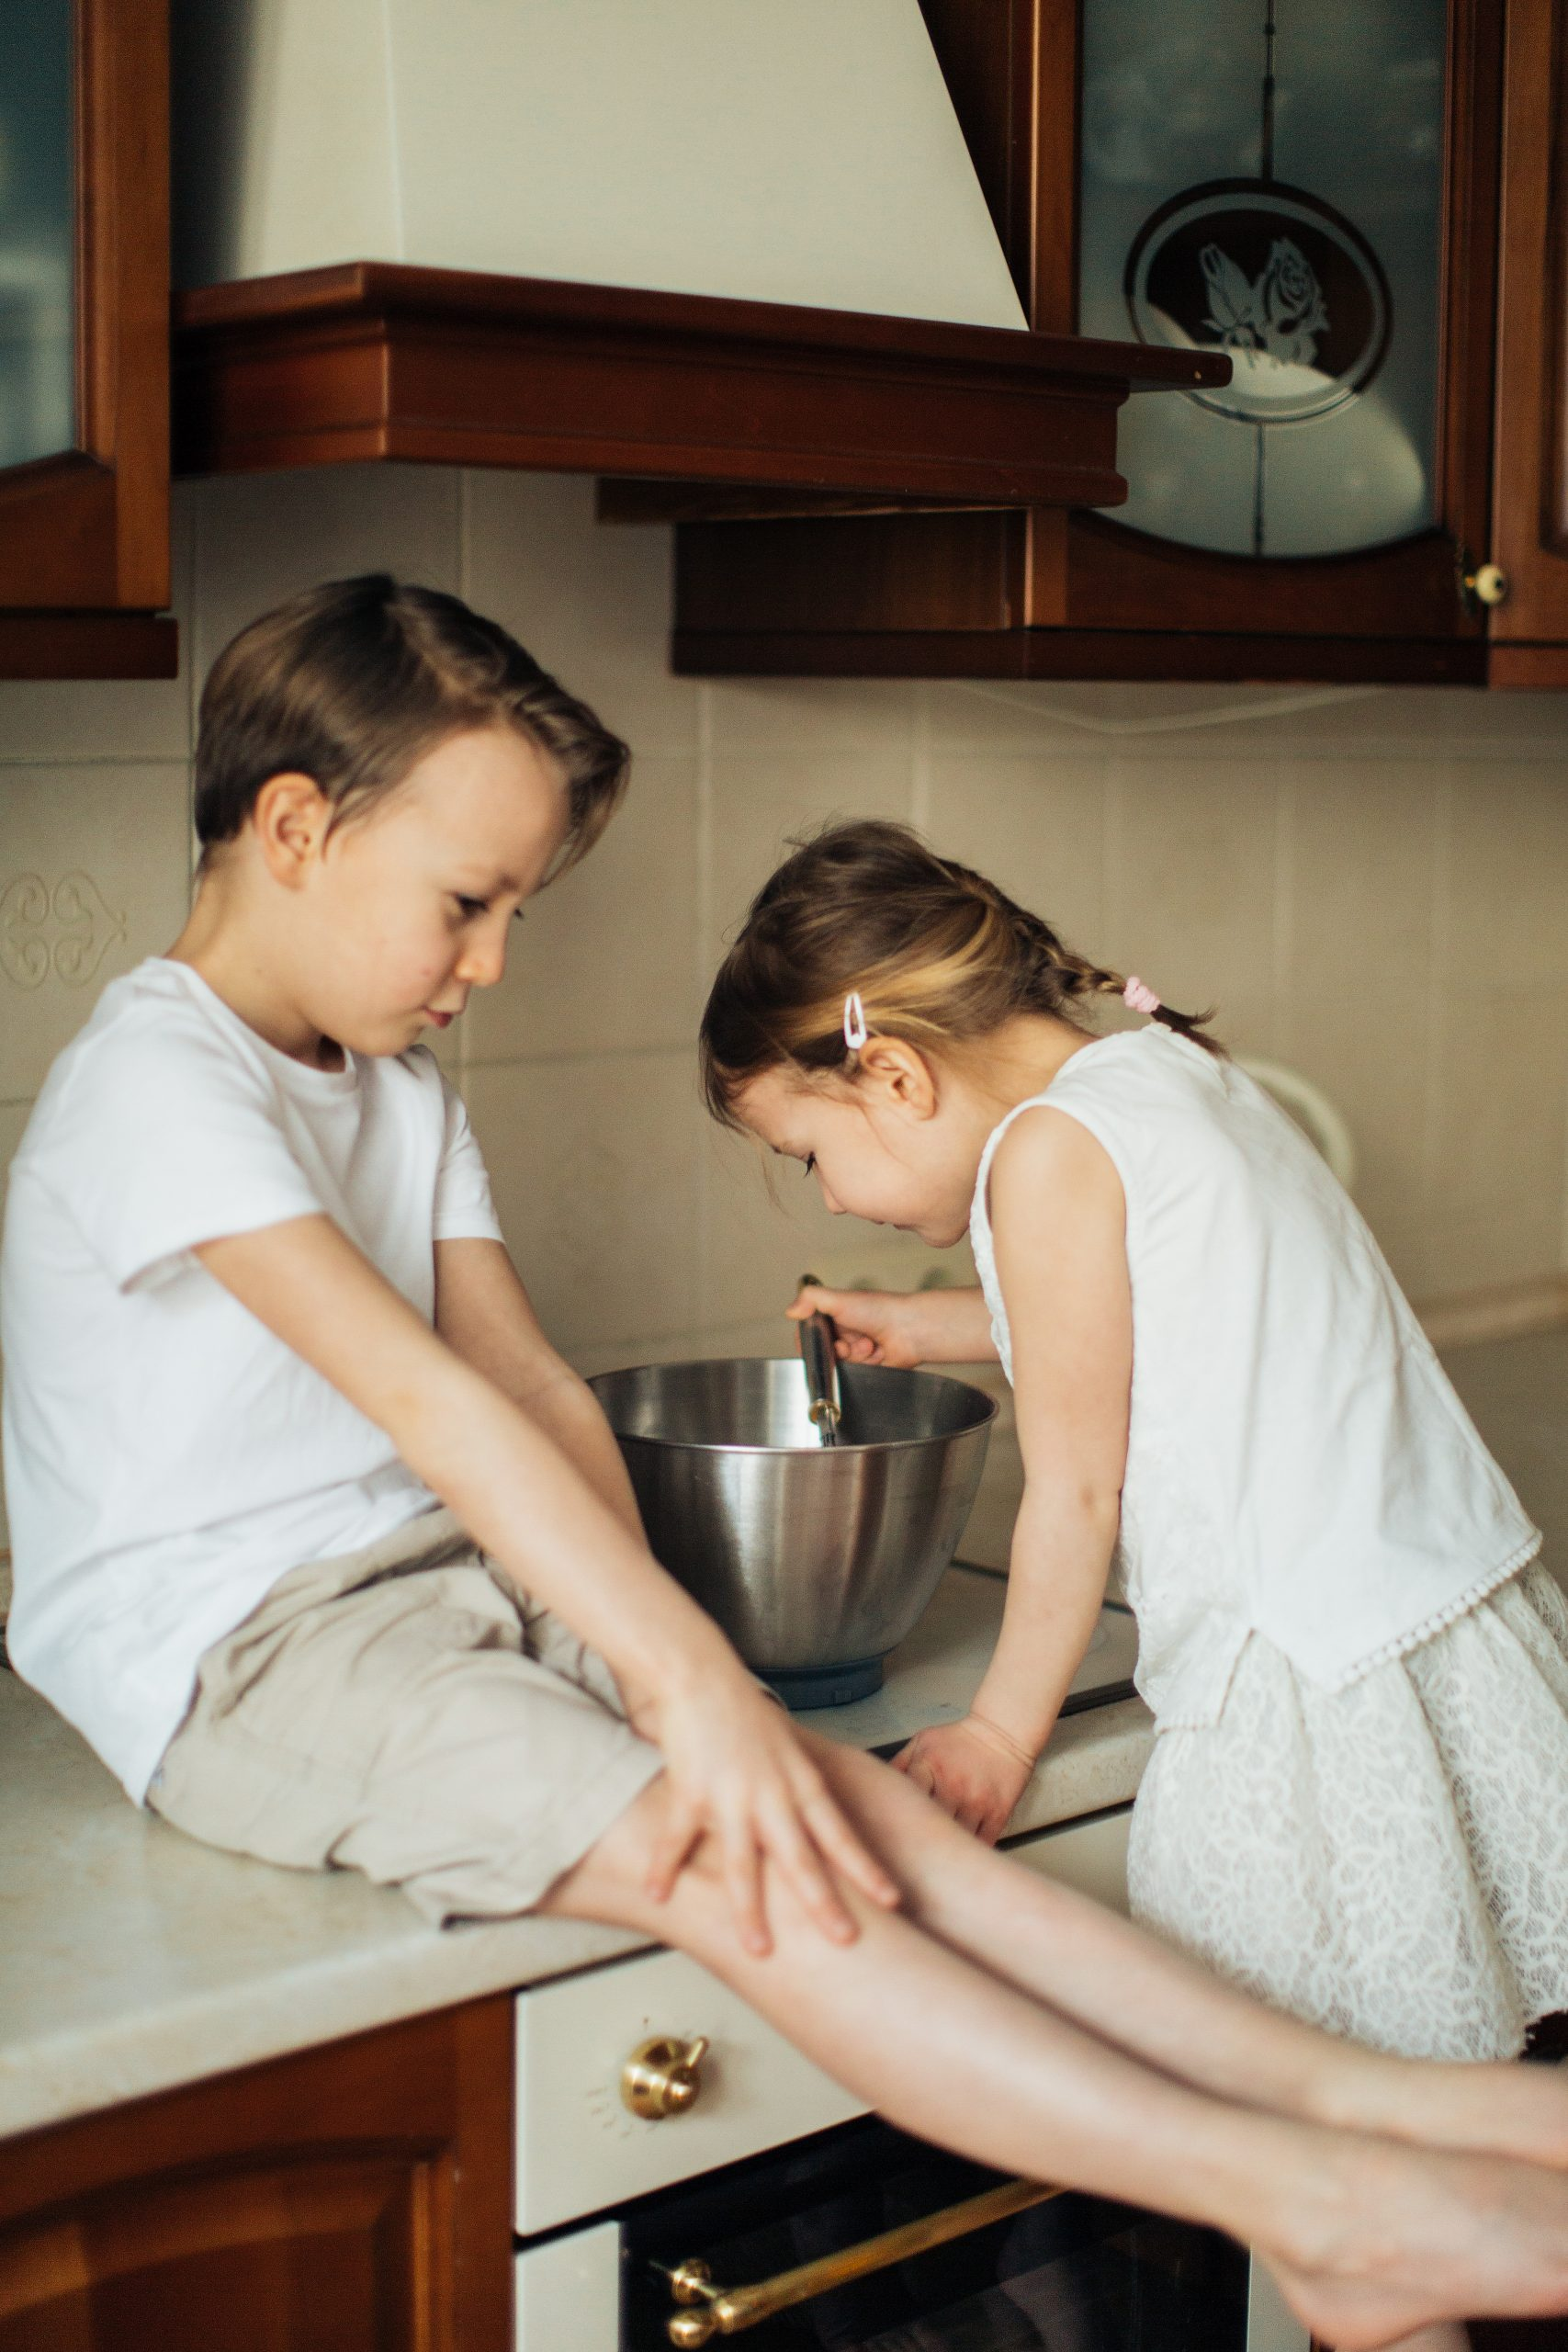 RT math social photo-of-boy-sitting-on-kitchen-counter-top-3807116 (1)